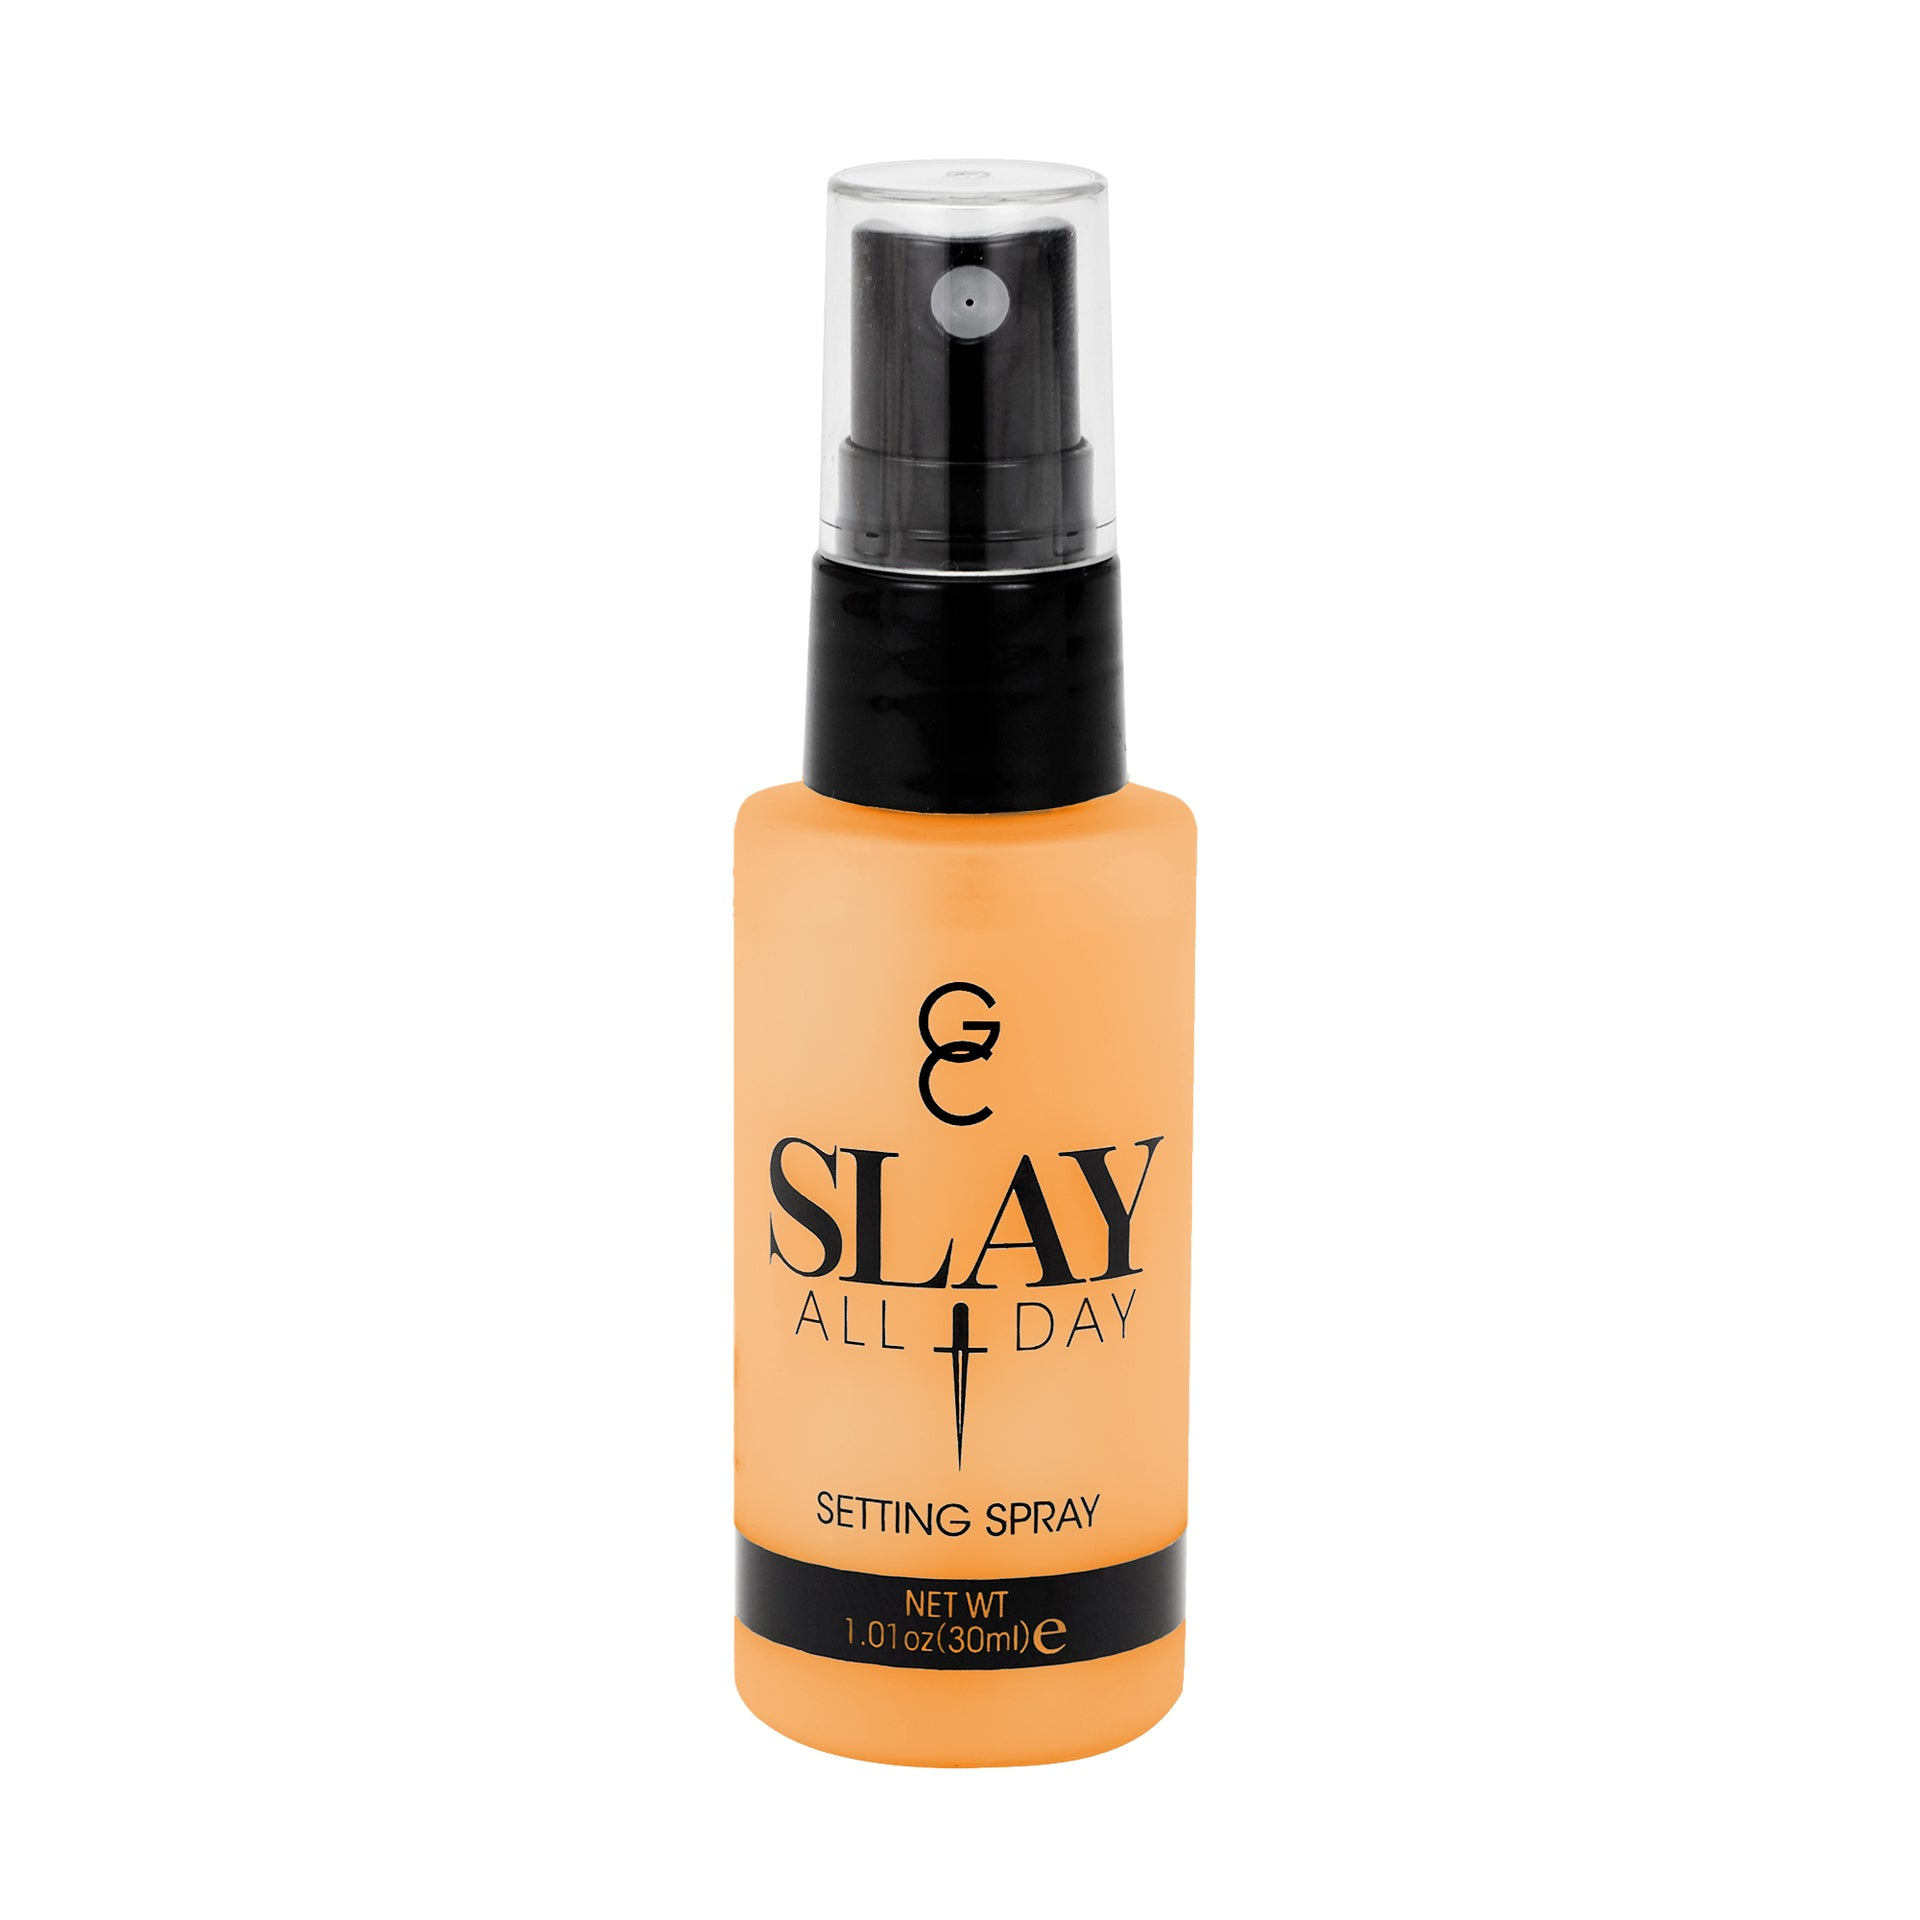 DREAMSICLE  Slay All Day Setting Spray Mini  Weight:1.01 oz / 28.6 g